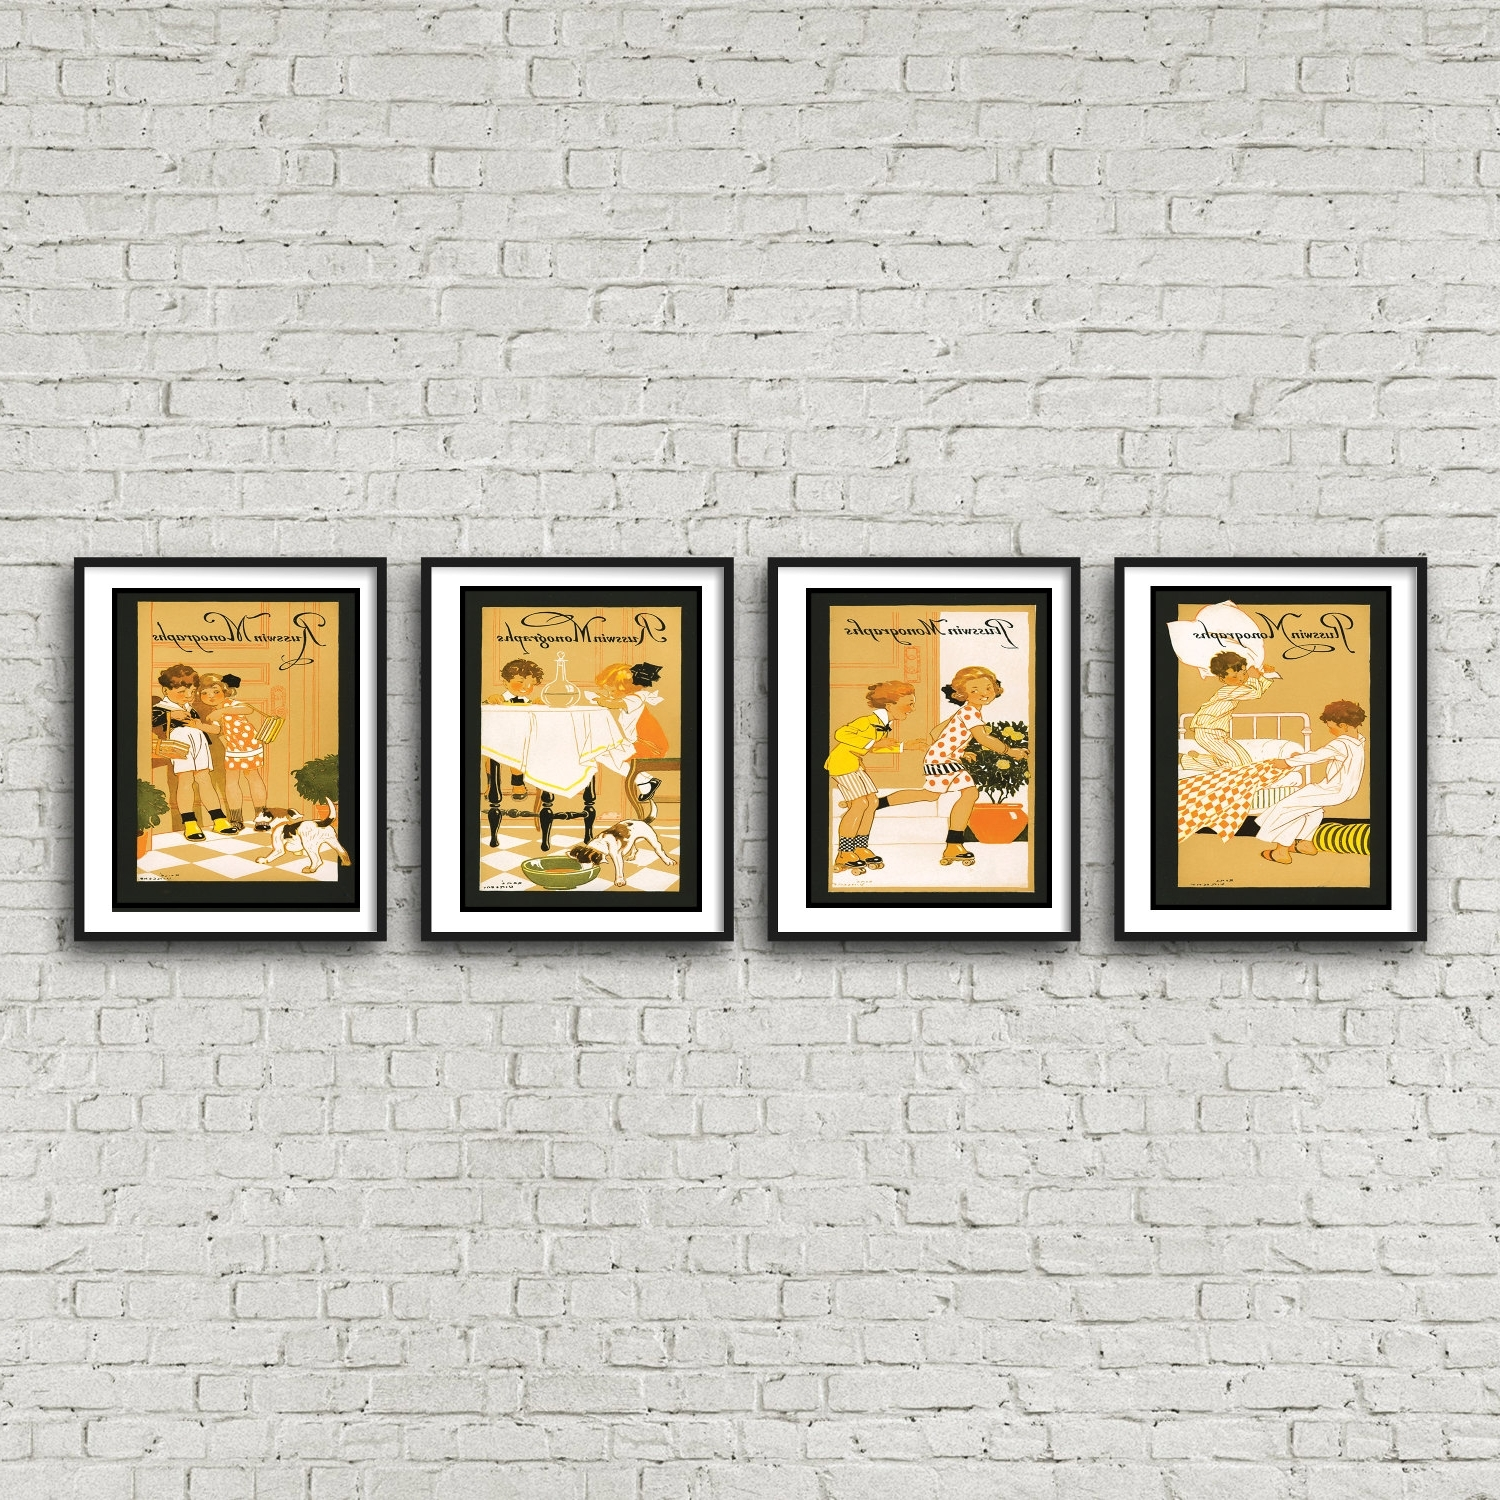 Framed Art Deco Prints For Most Popular 4 Piece Wall Art – Children's Art Deco Nursery Art Free Shipping (View 13 of 15)